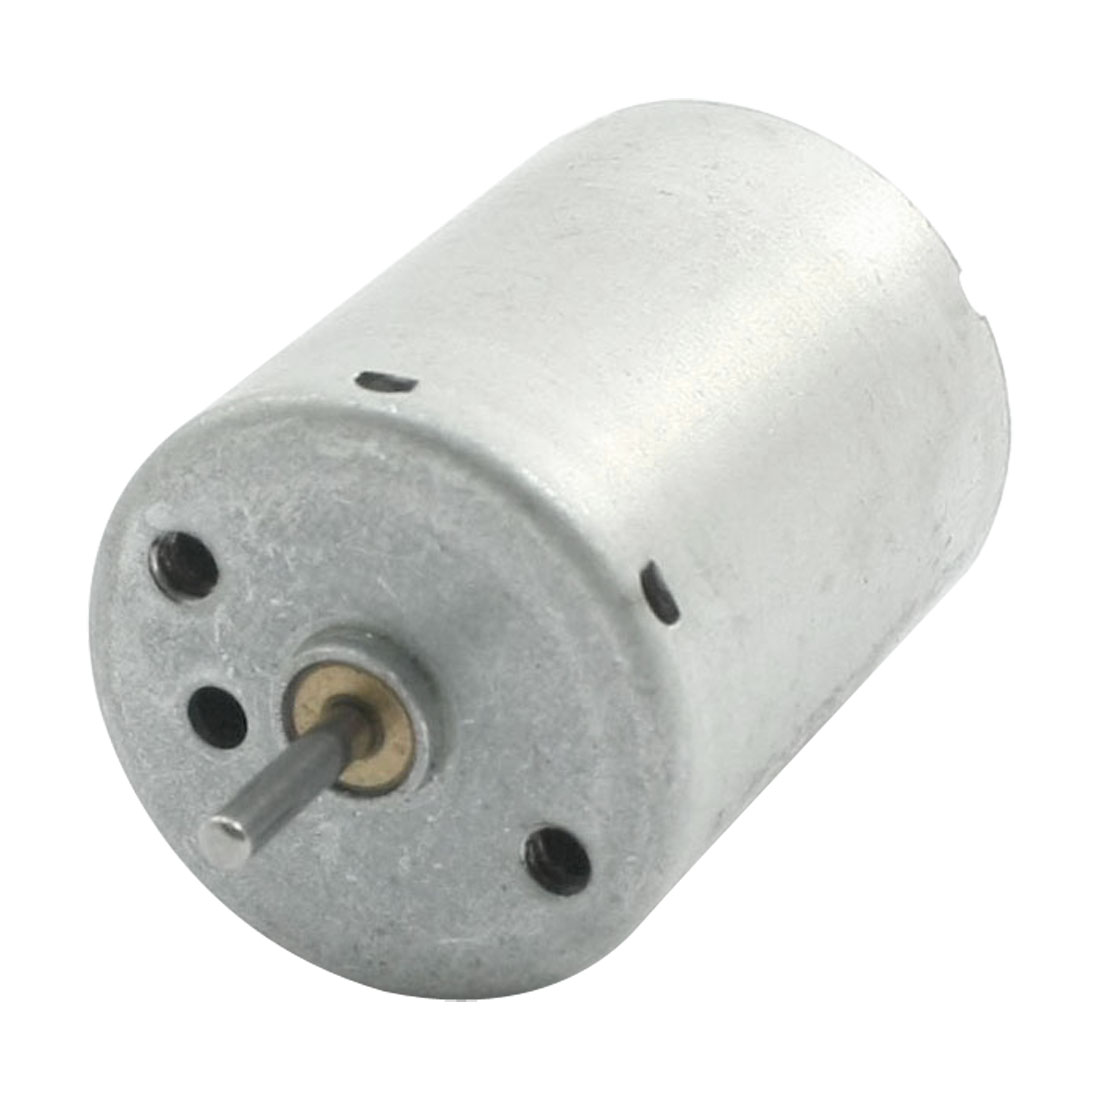 2mm-Round-Shaft-Cylinder-Electric-Mini-Vibration-Motor-10000RPM-DC-6V